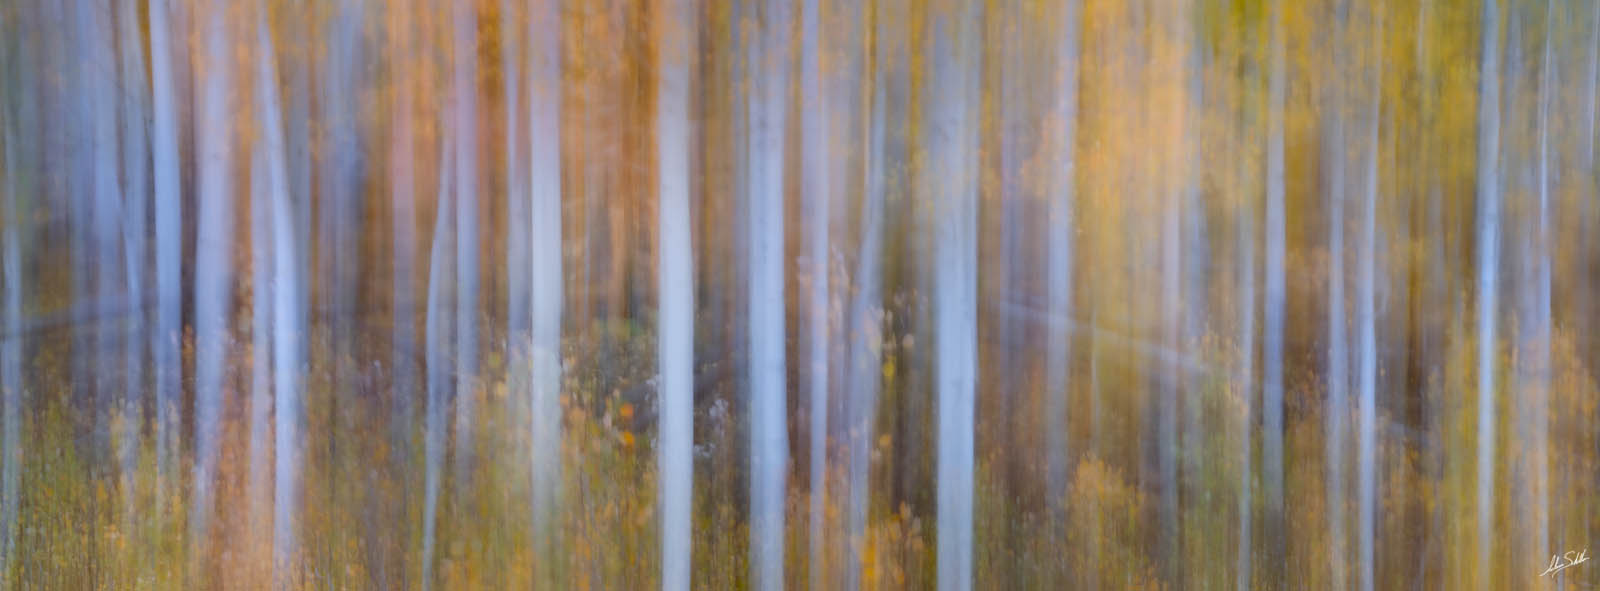 Abstract, Autumn, CO, Colorado, Fall, Fall Color, Forest, ICM, Impressionism, Intentional Camera Movement, Pano, Panorama, Panoramic, photo